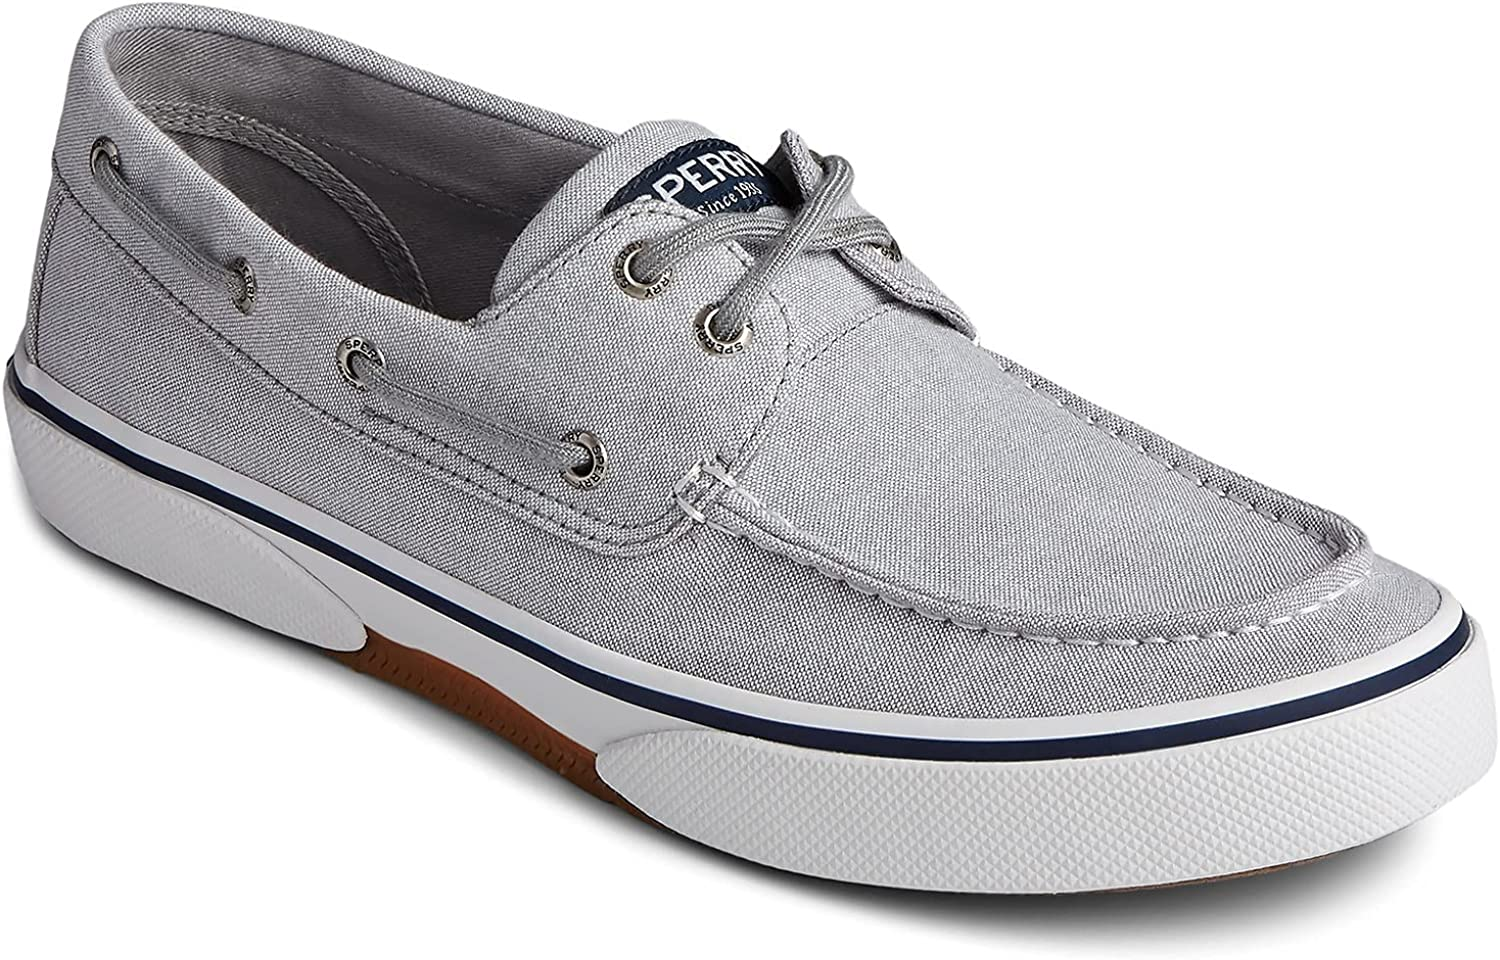 Sperry Men's Special Campaign Detroit Mall Halyard Sneaker